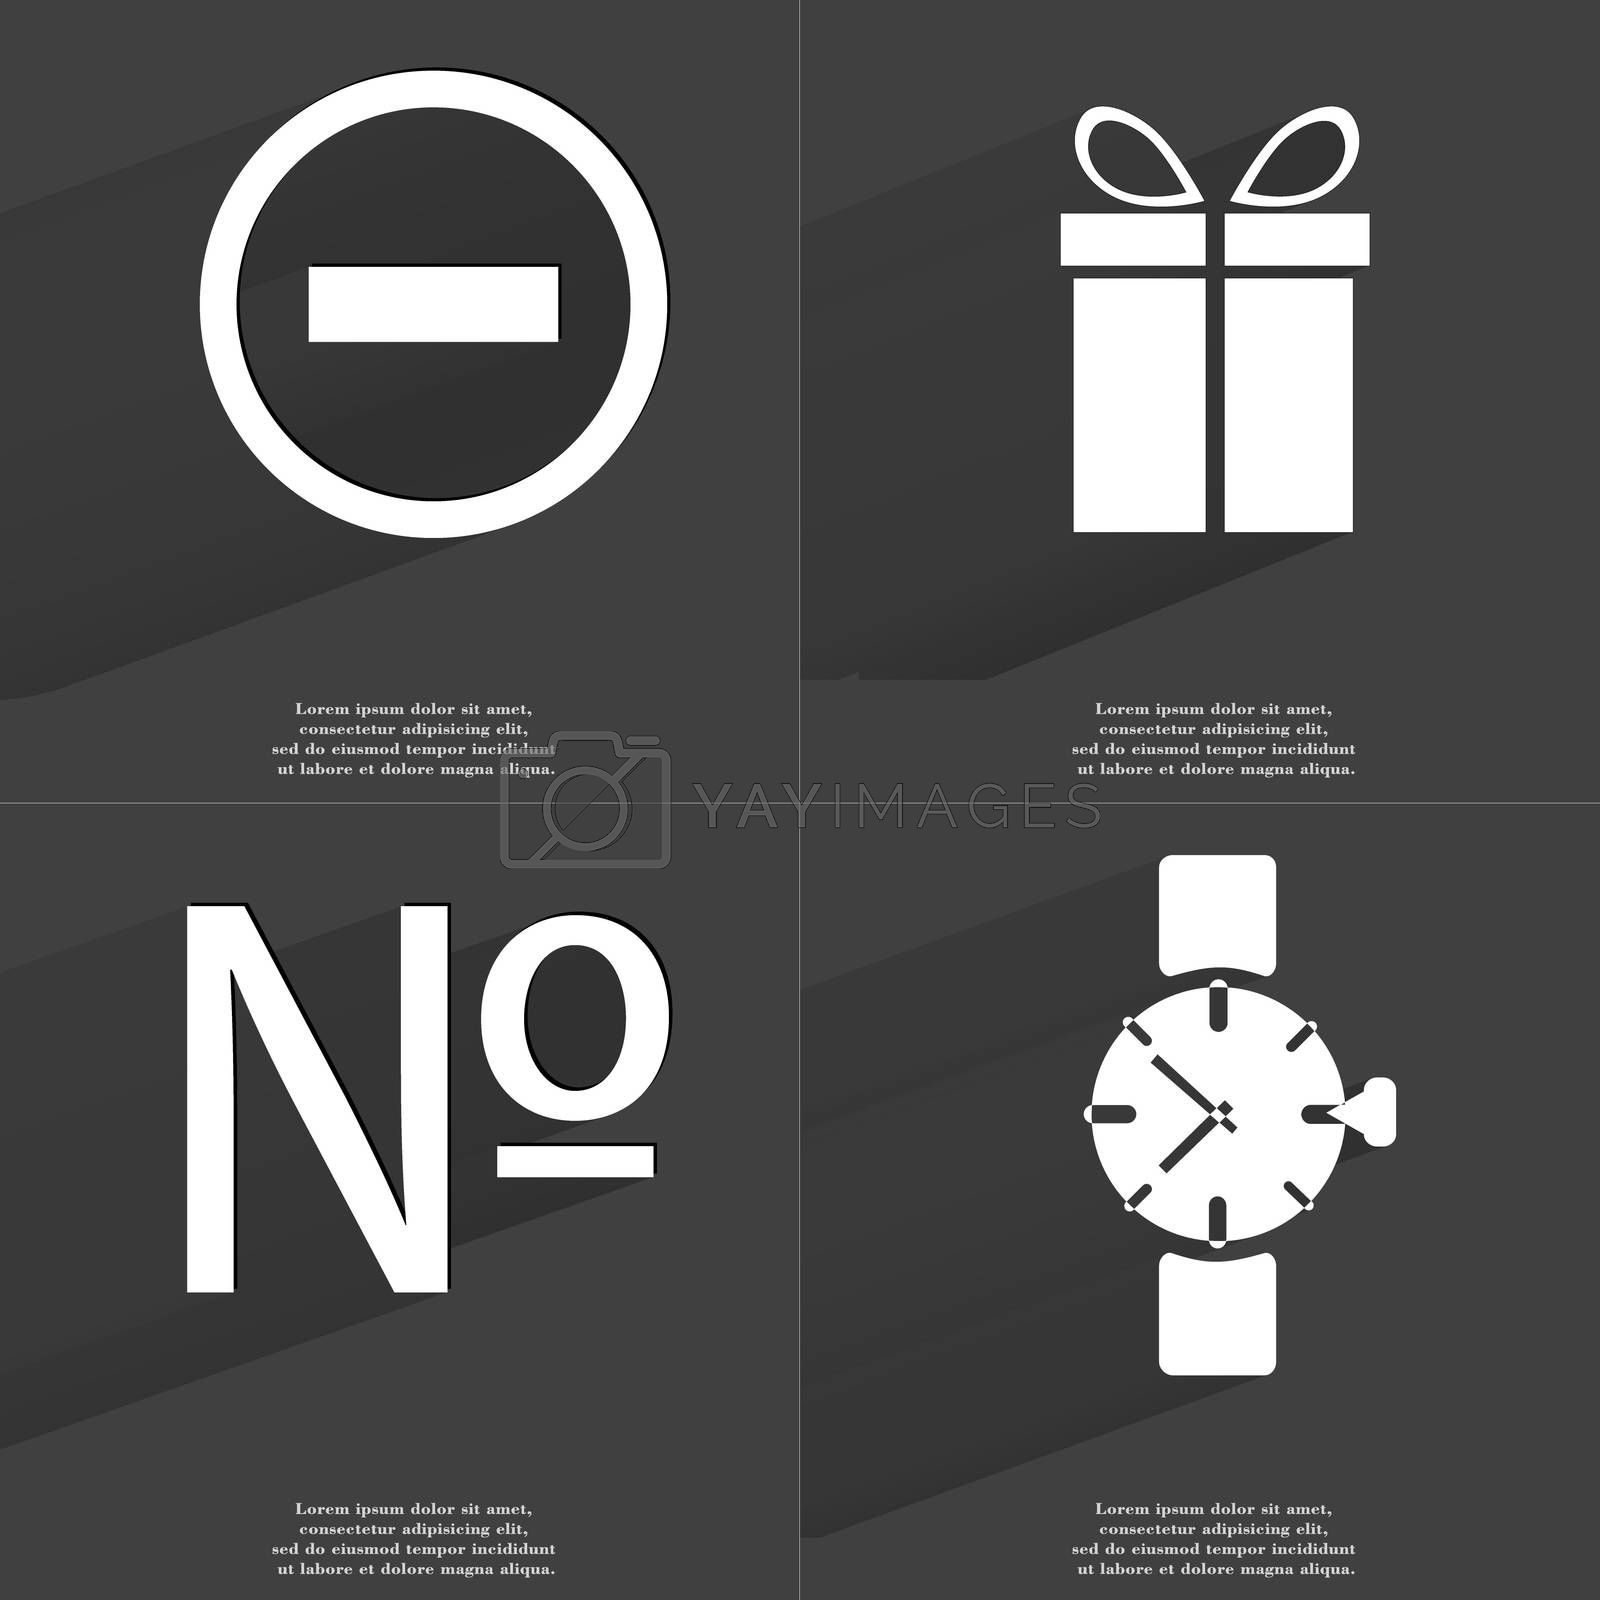 Royalty free image of Minus, Gift, Numero sign, Wrist watch. Symbols with long shadow. Flat design by serhii_lohvyniuk